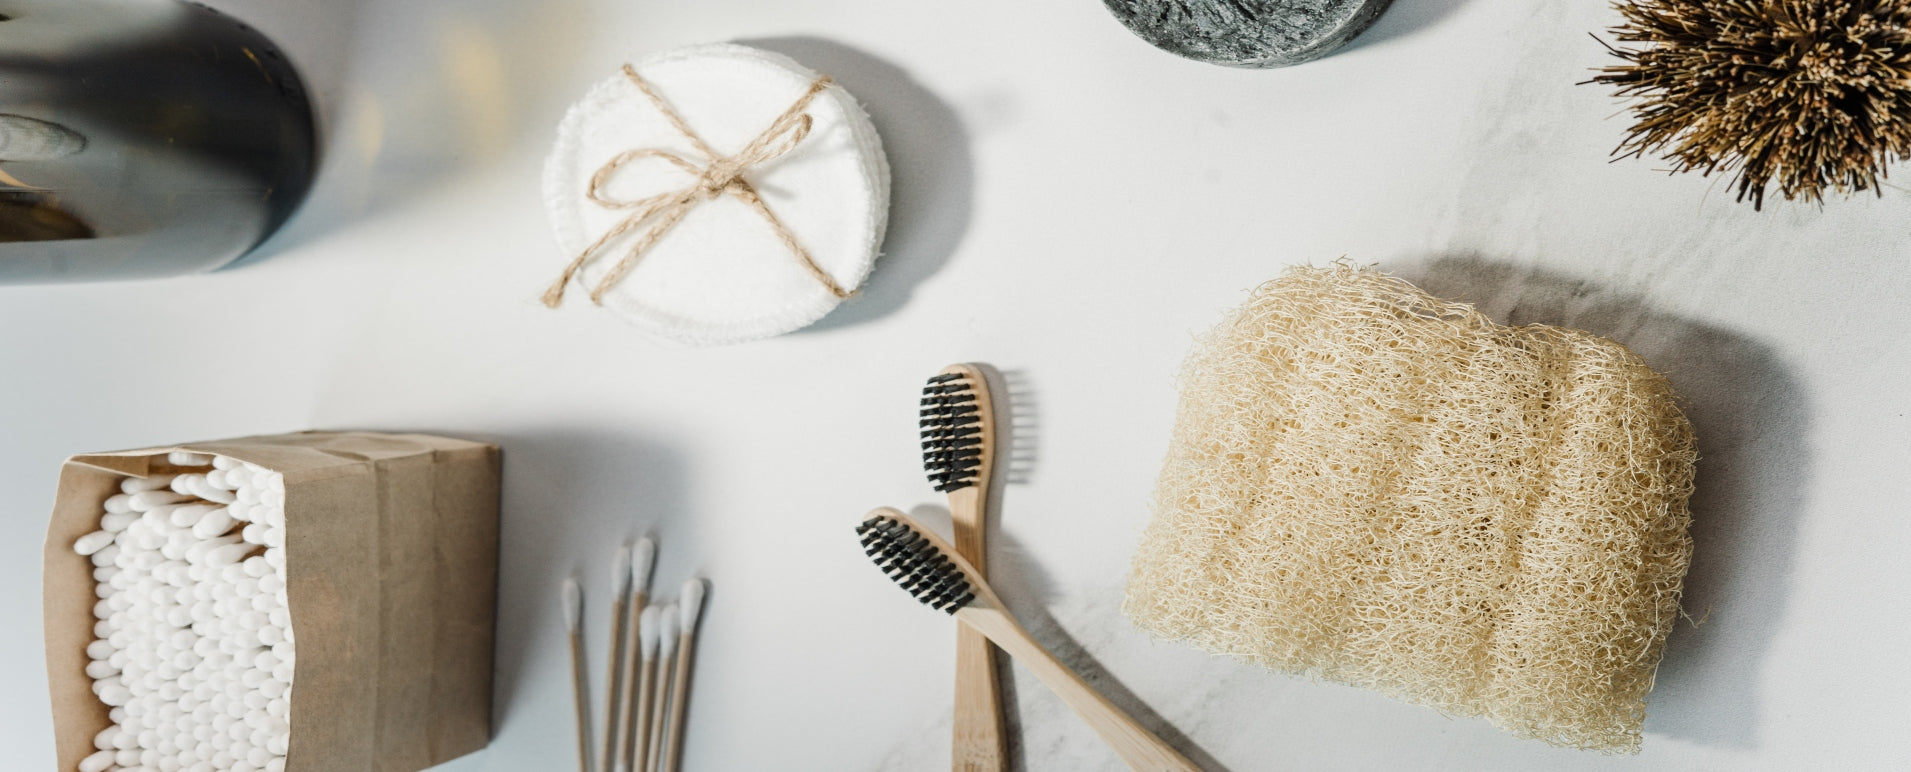 Low Waste Bathroom Items: Toothbrushes, Cotton Rounds, Loofah Sponge